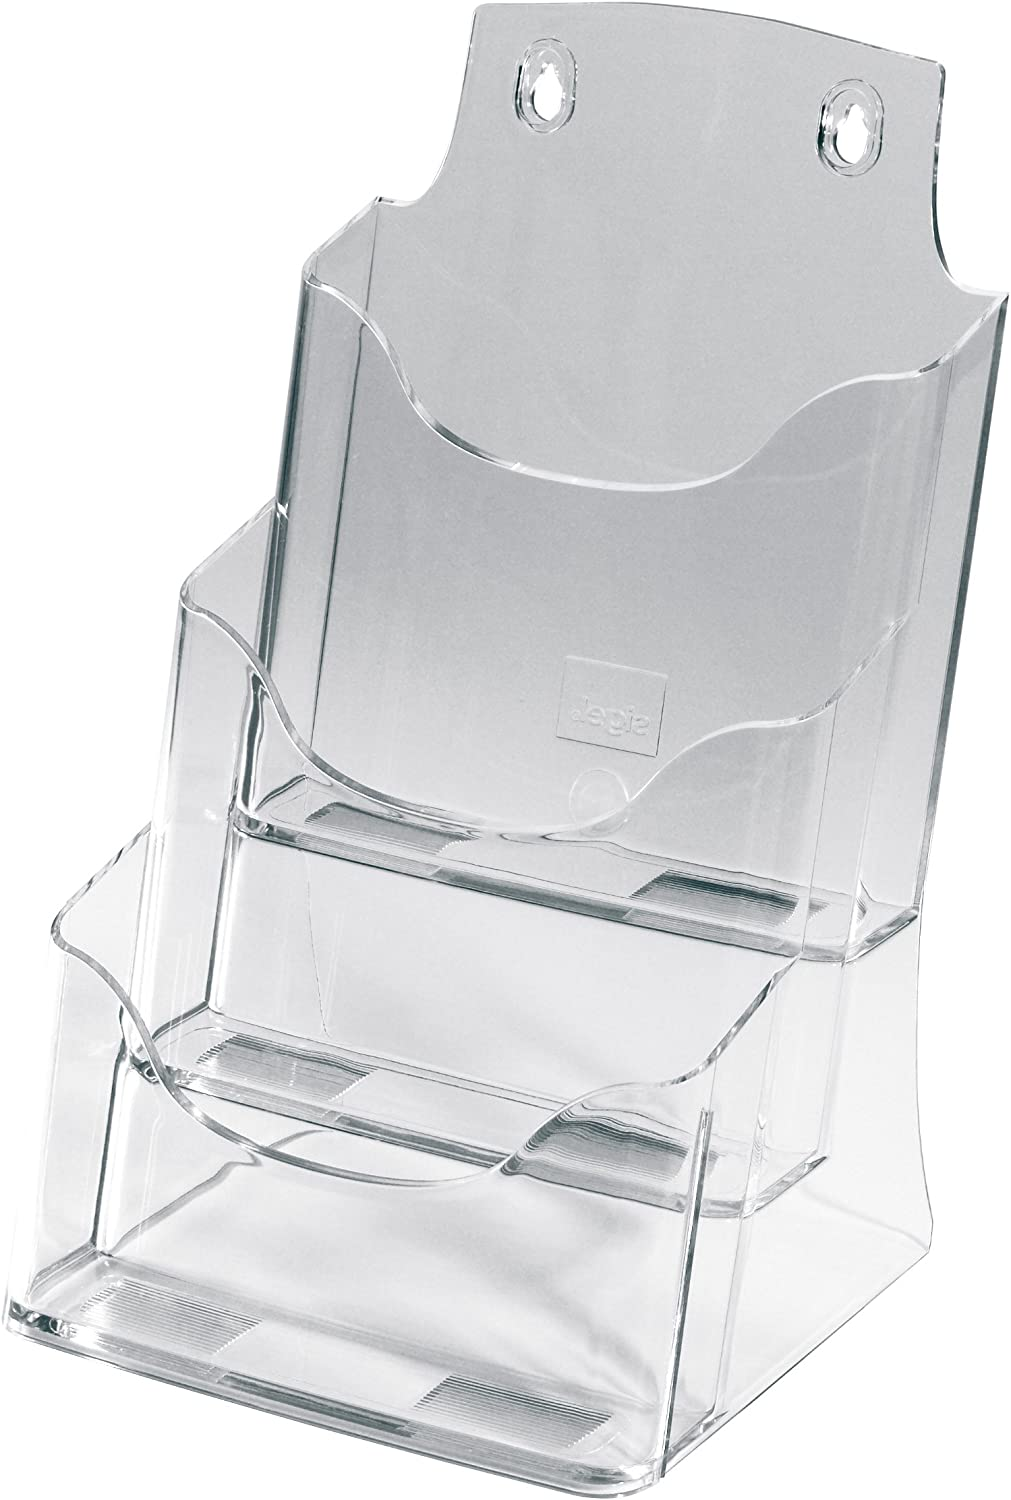 Sigel LH132 Table-Top Literature Holder Acrylic, with 3 compartments, Clear, for A5